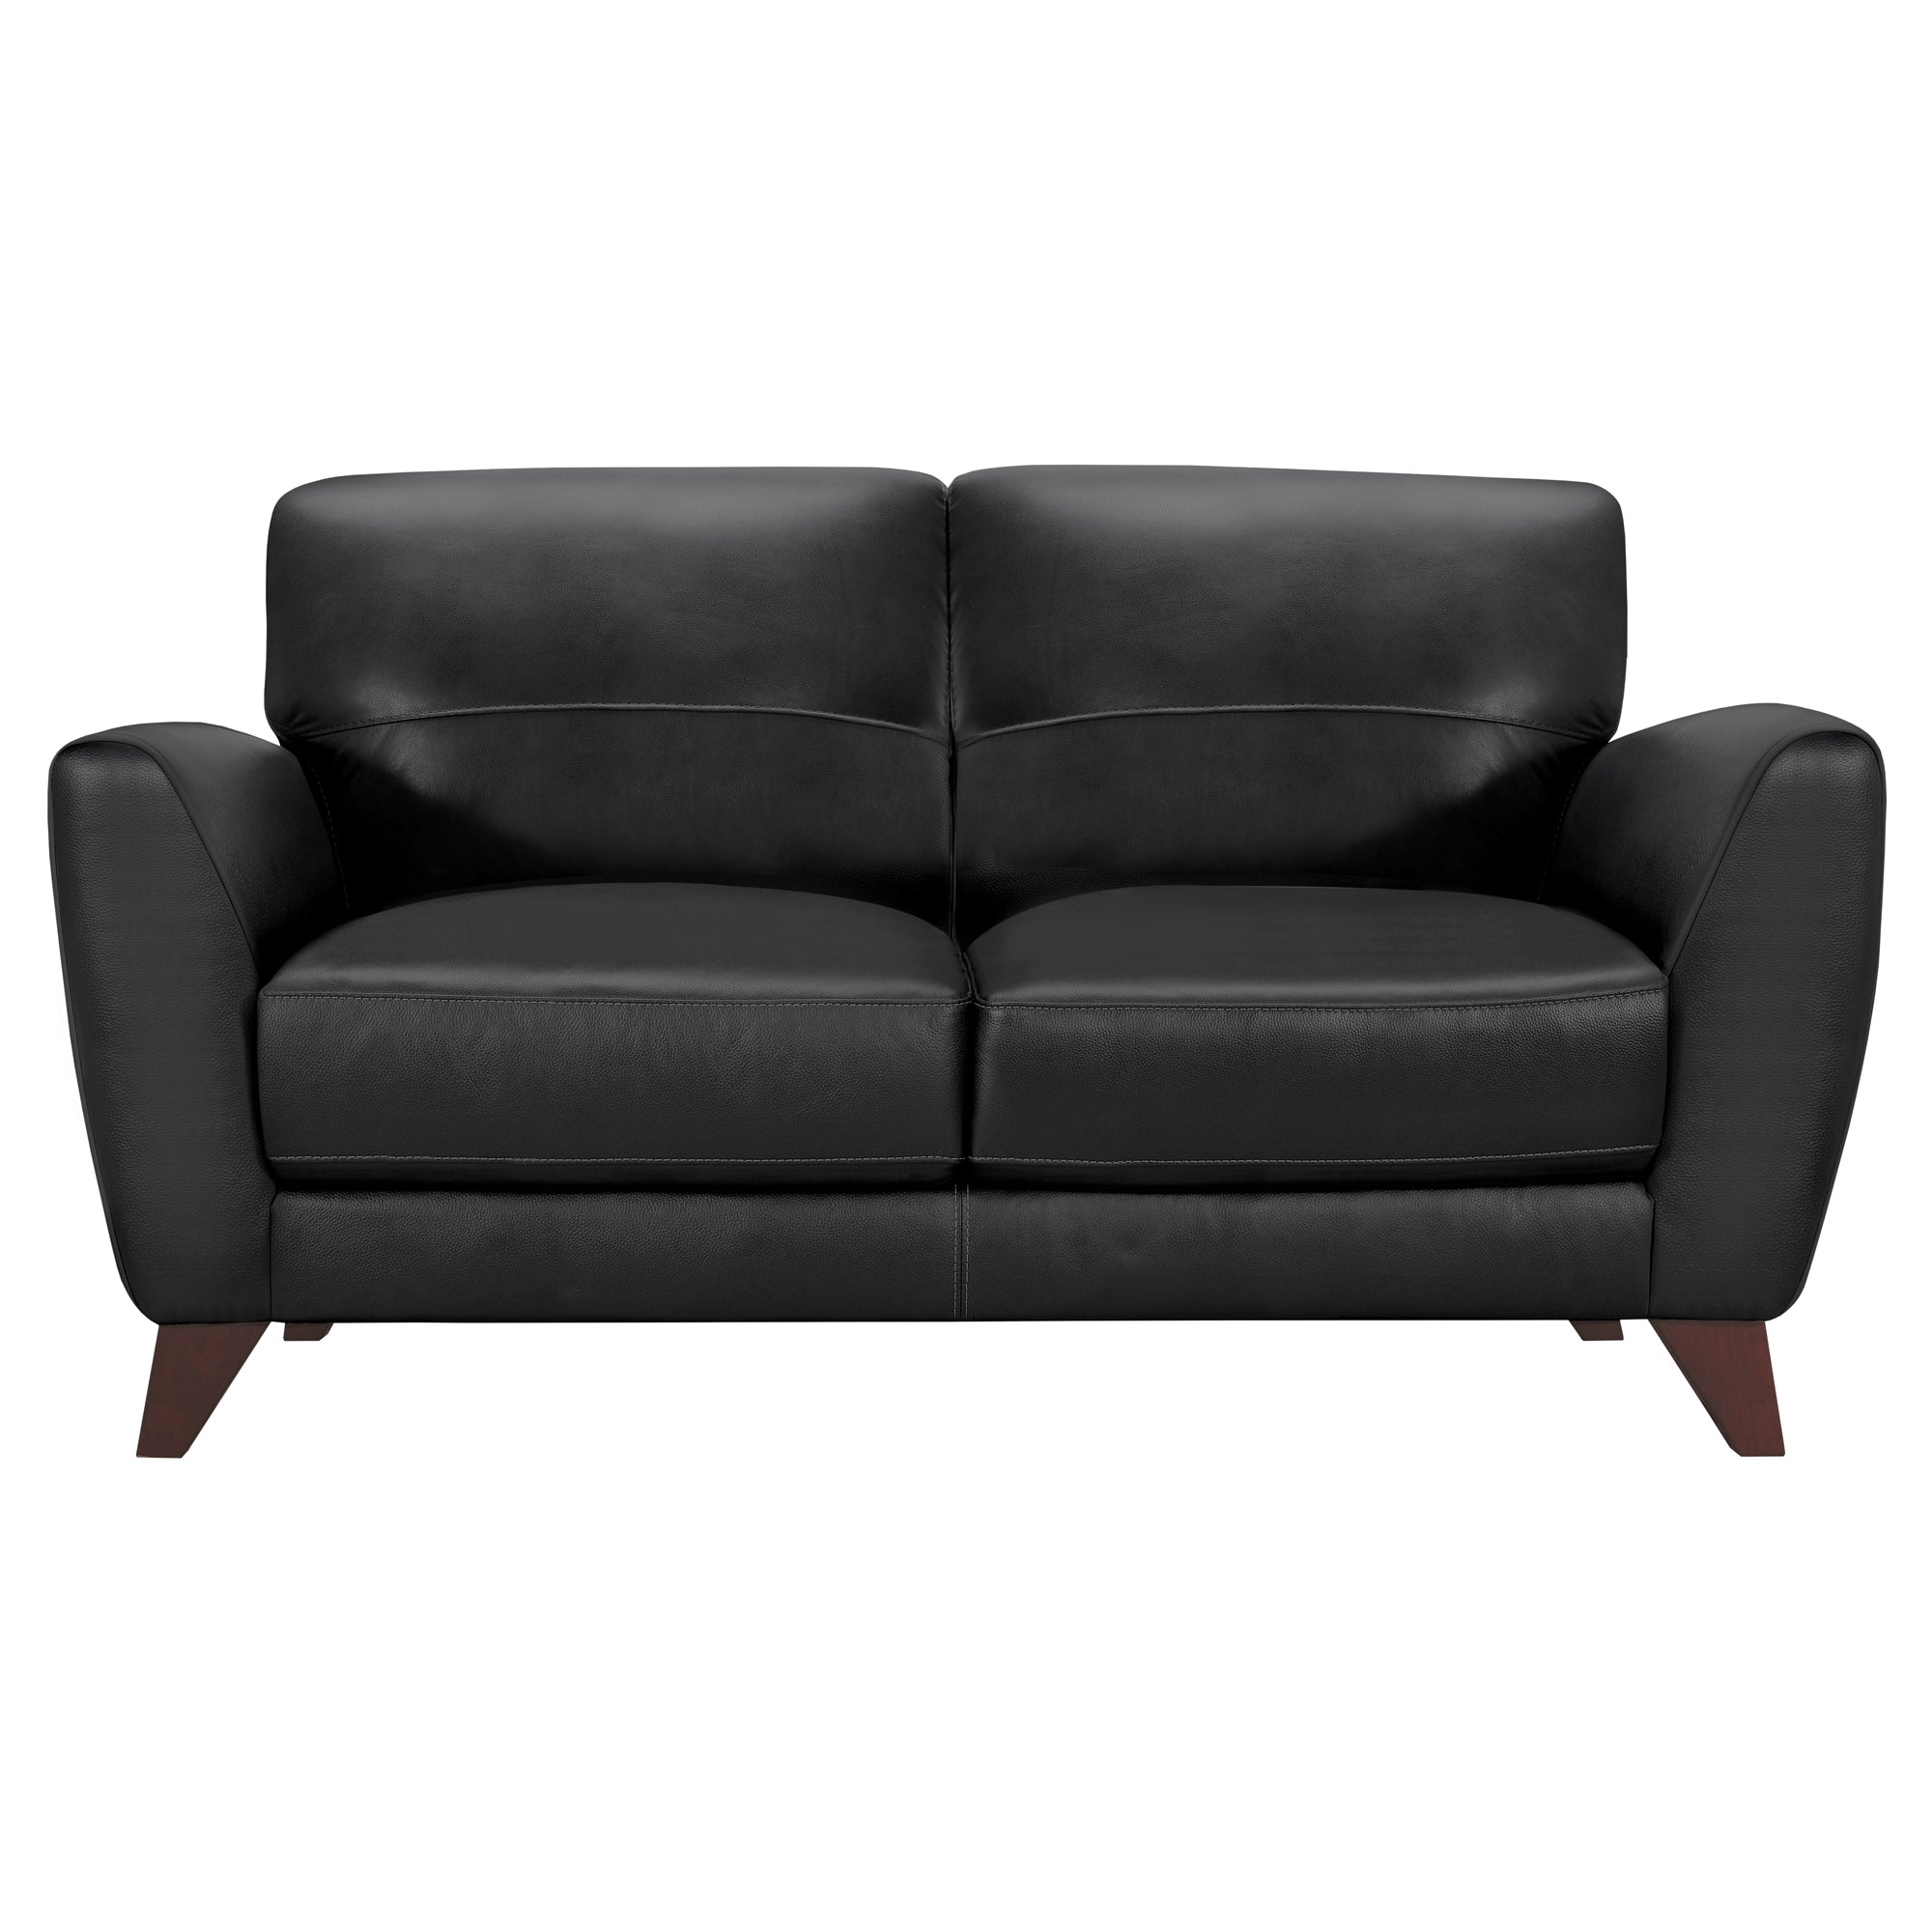 Contemporary Loveseat Genuine Black Leather Brown Wood Legs Jedd